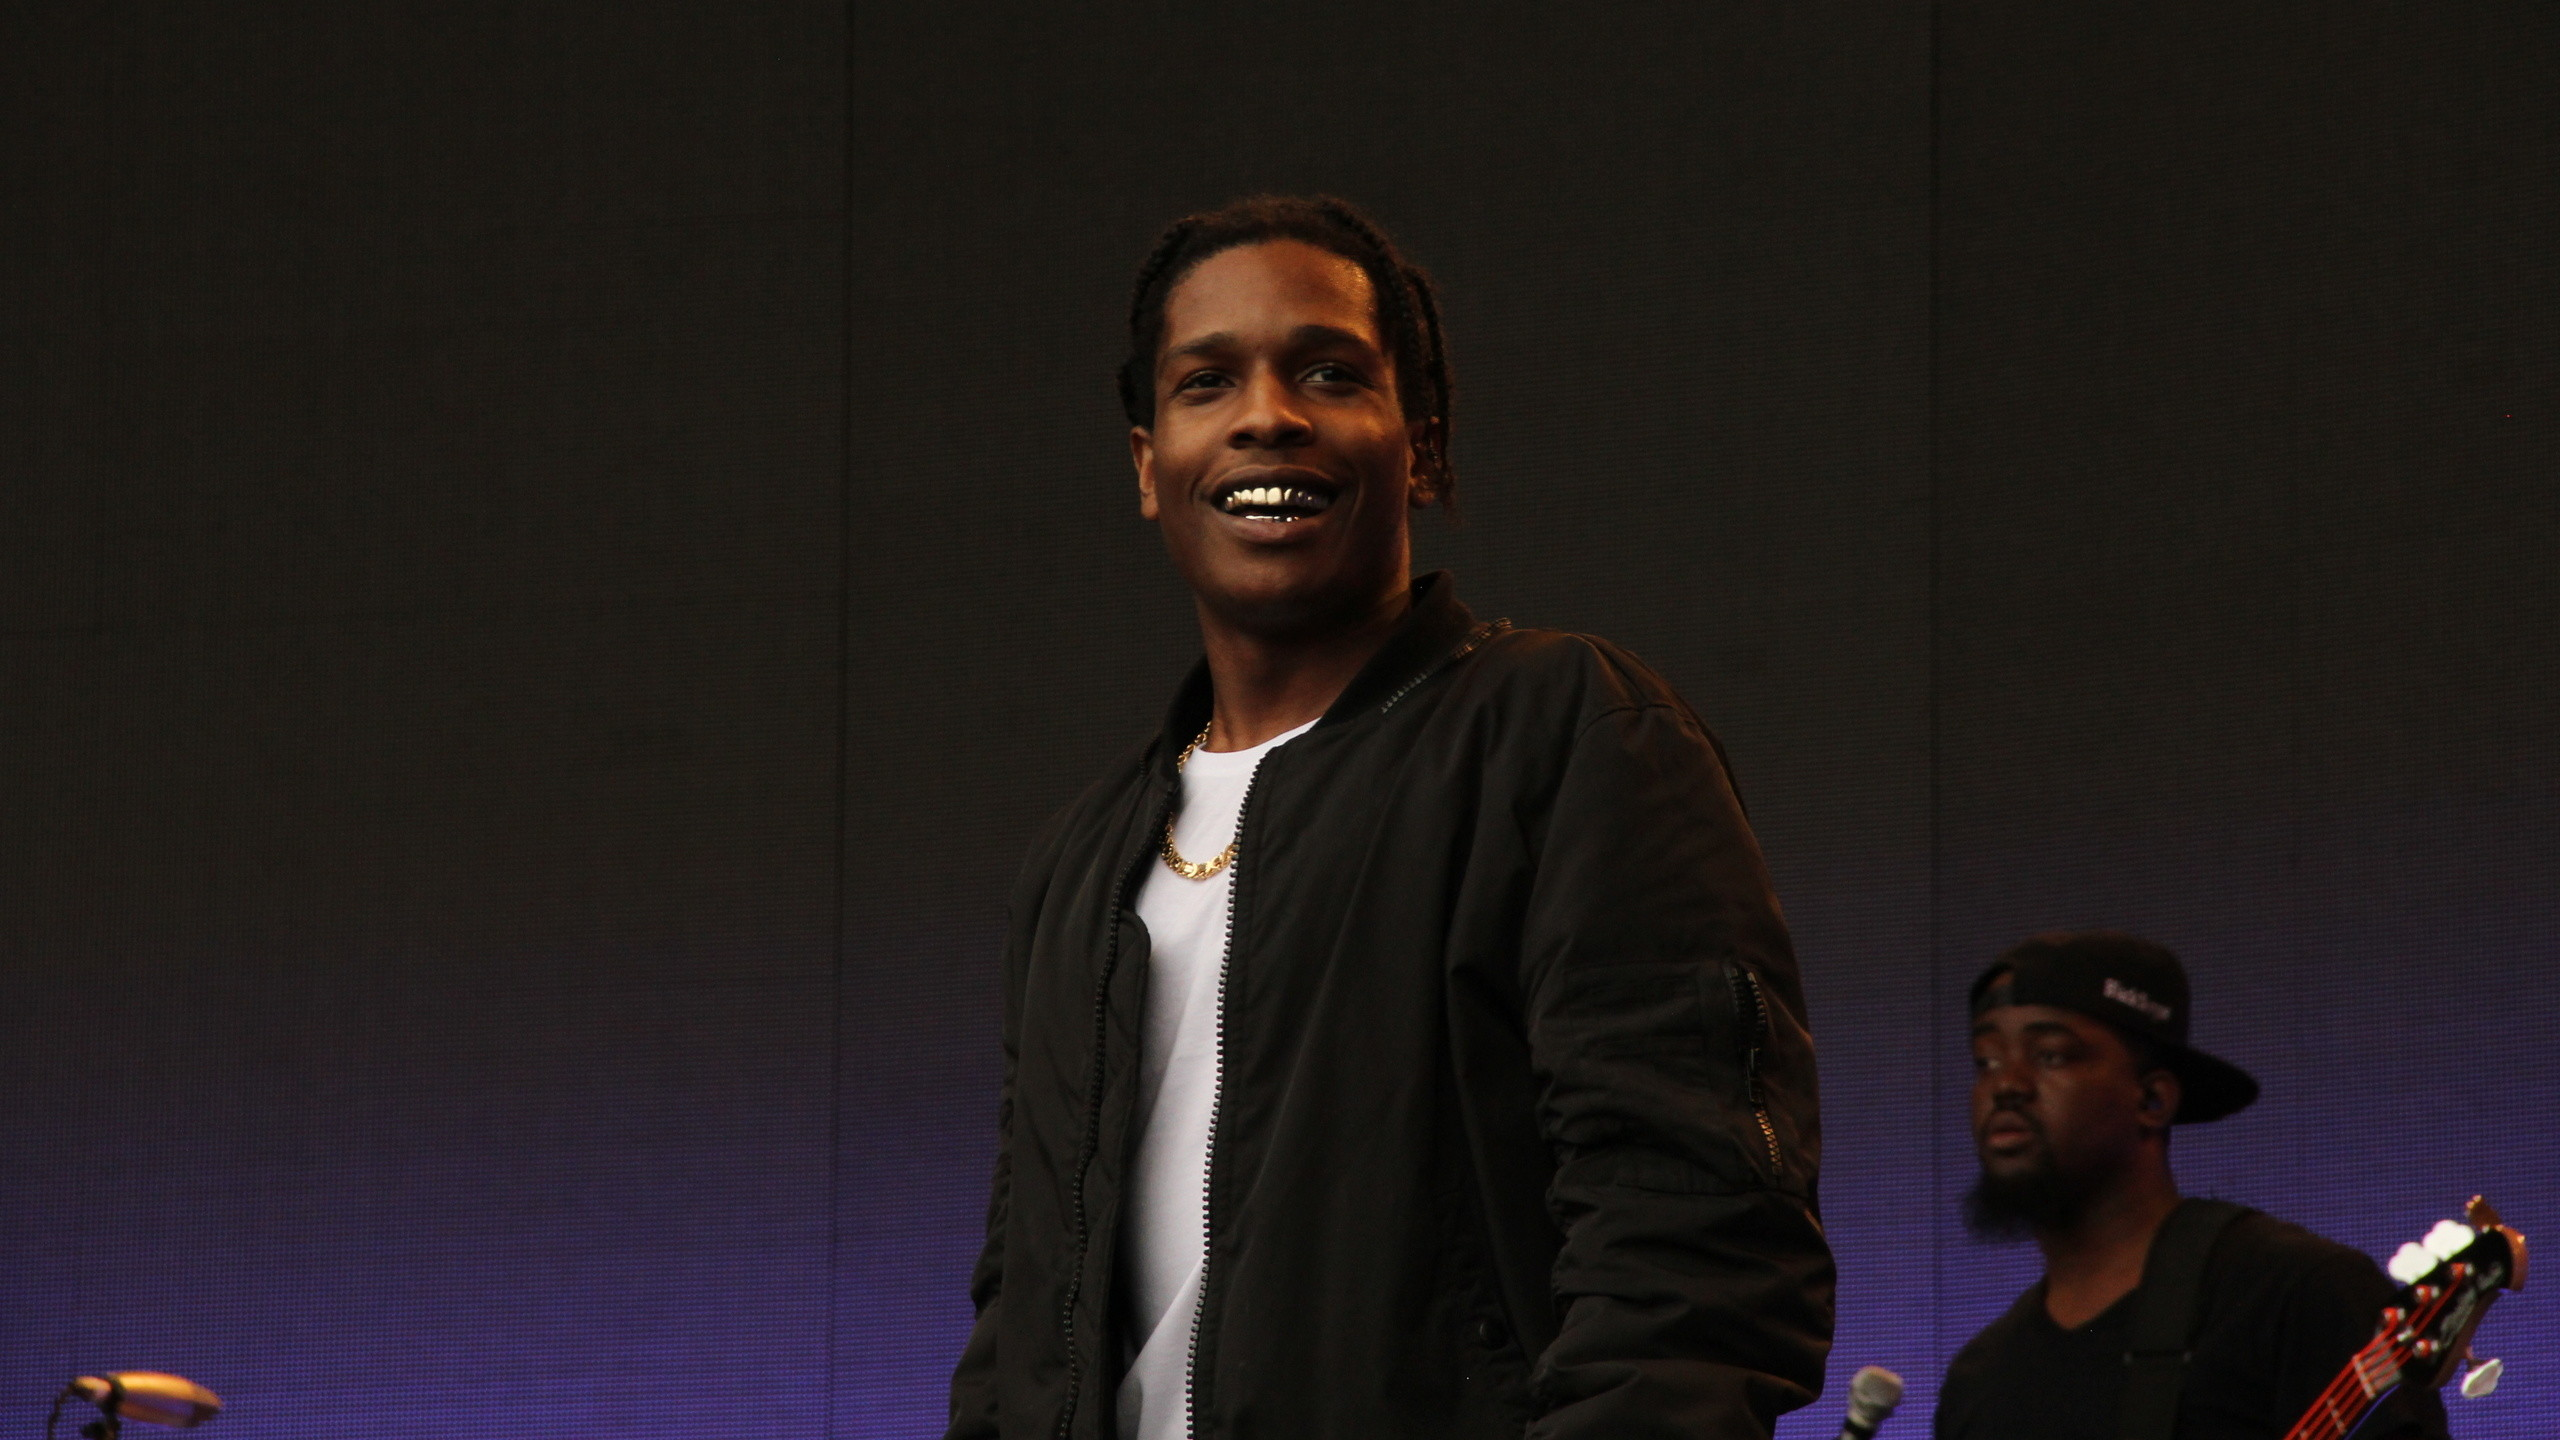 Asap Rocky Iphone 5 Wallpaper 65 Images